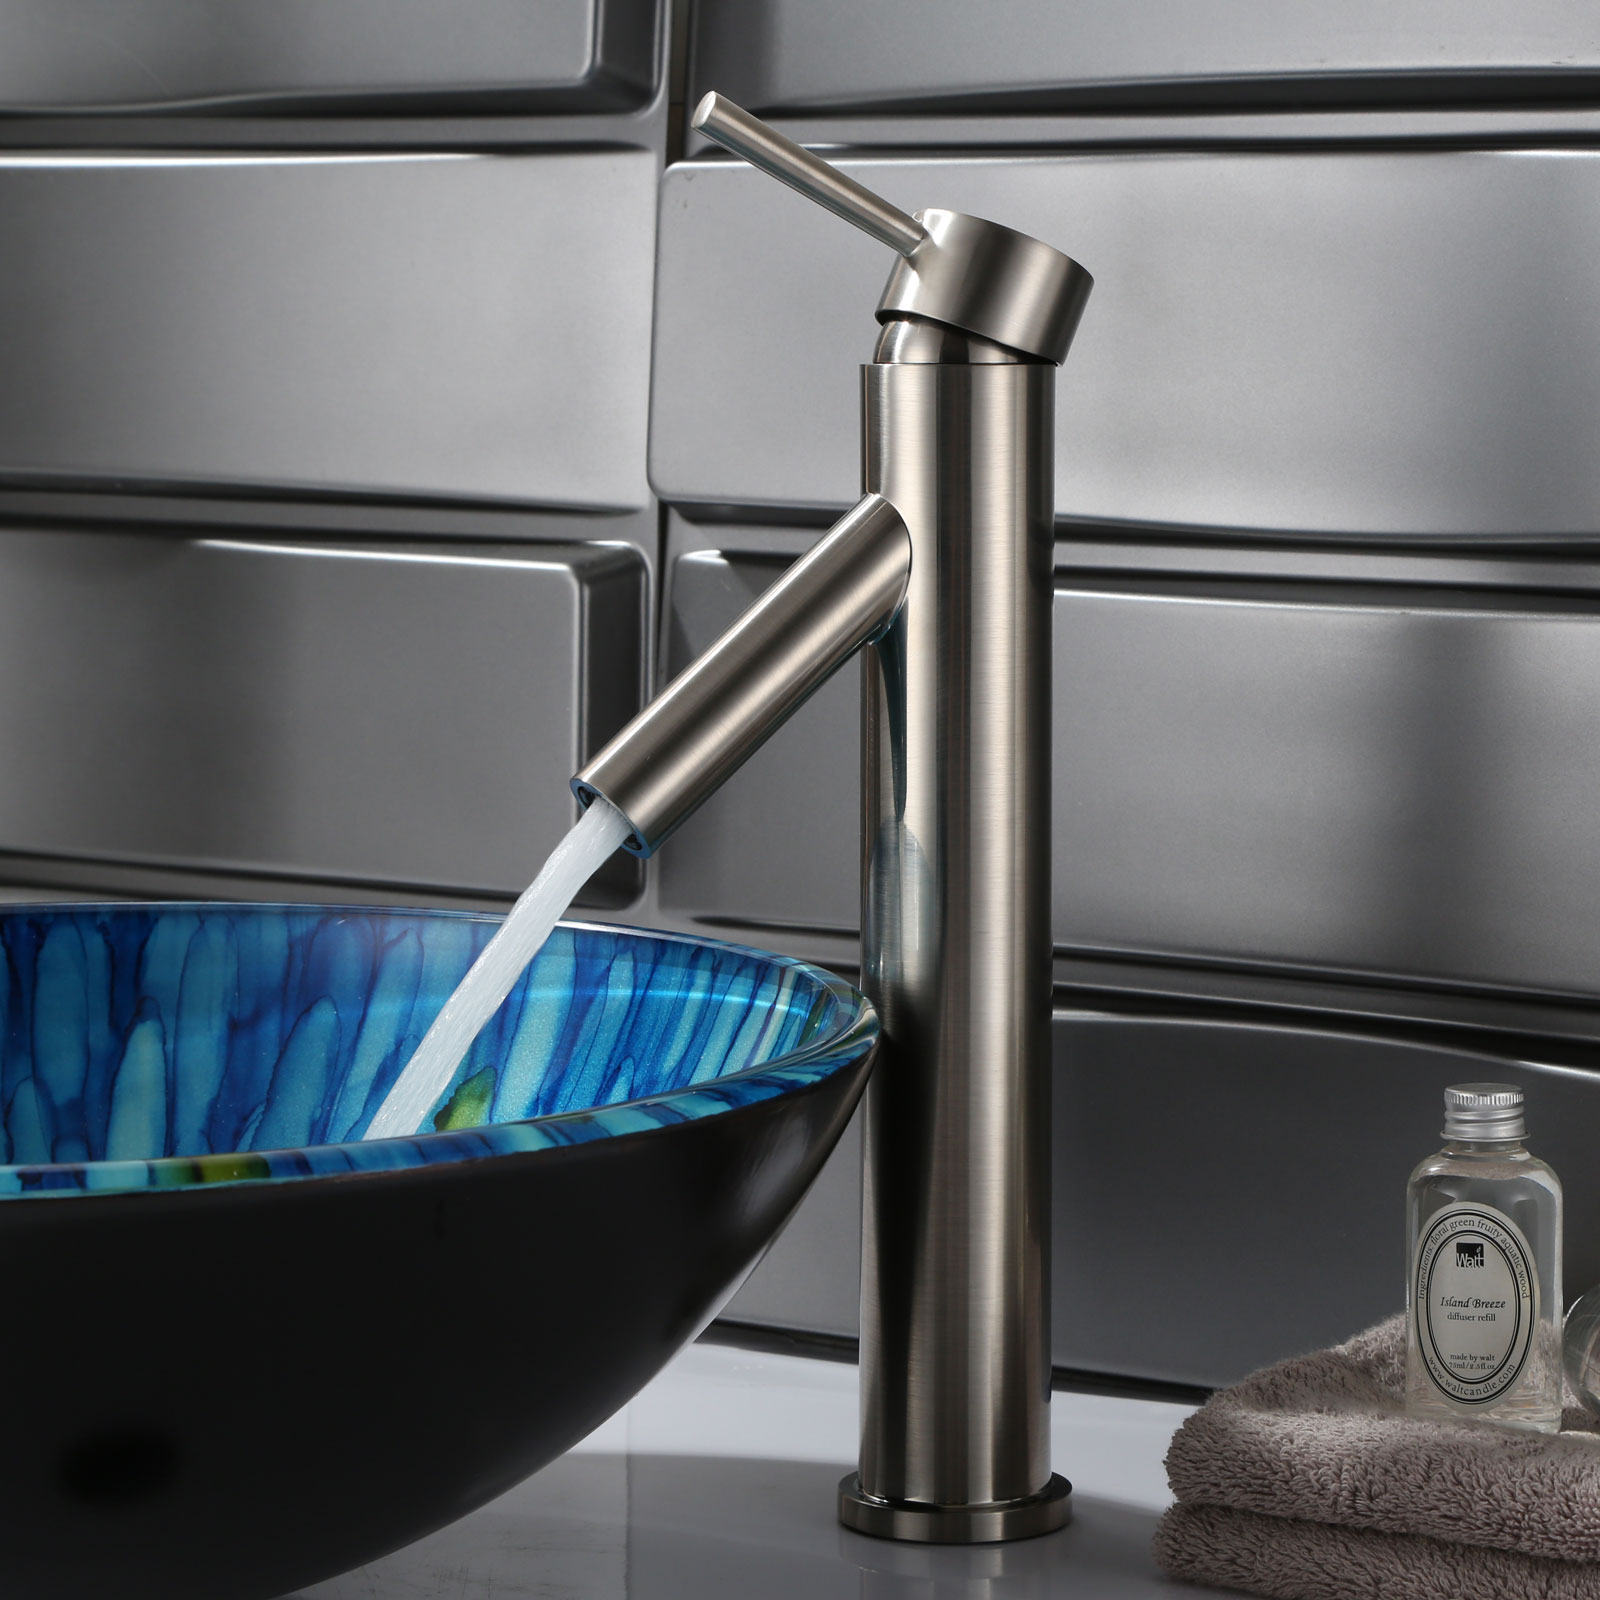 ELITE 2659BN Modern Bathroom Sink Faucet Brushed Nickel Finish